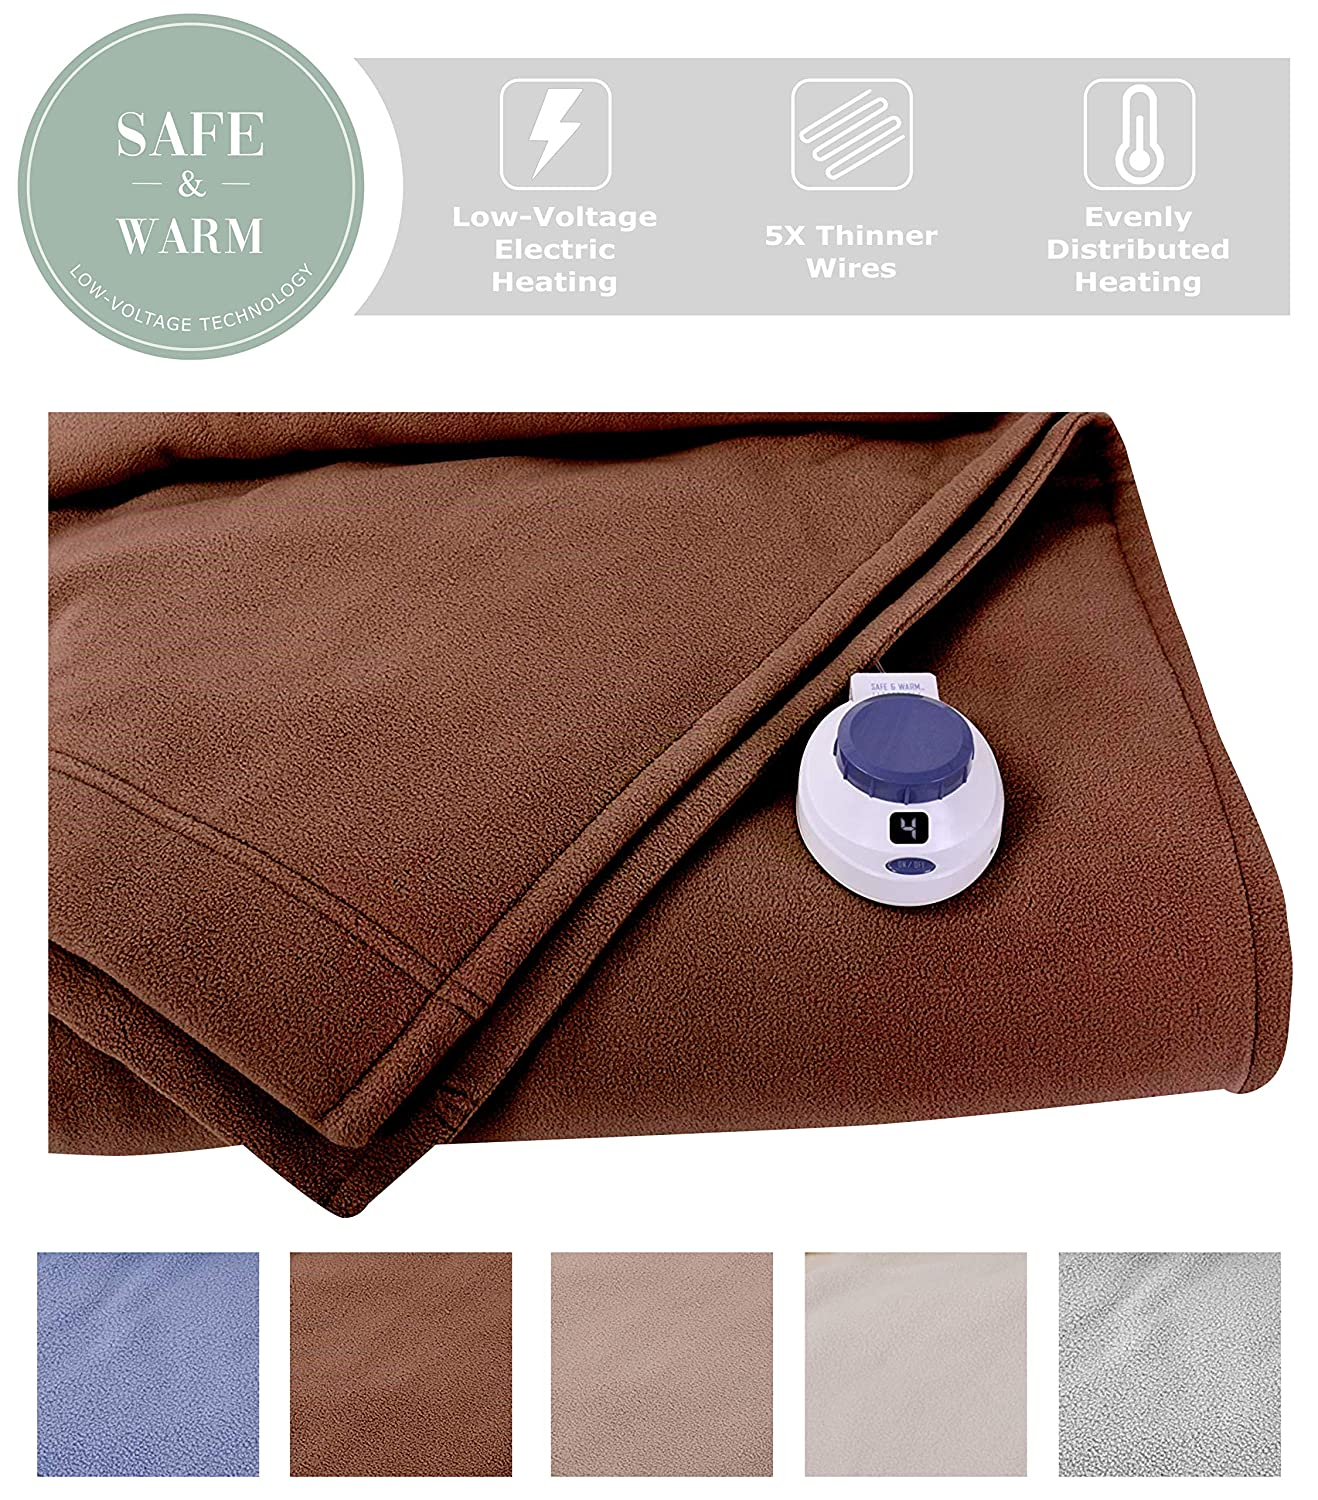 SoftHeat by Perfect Fit | Luxury Fleece Electric Heated Blanket with Safe & Warm Low-Voltage Technology (Twin, Chocolate)